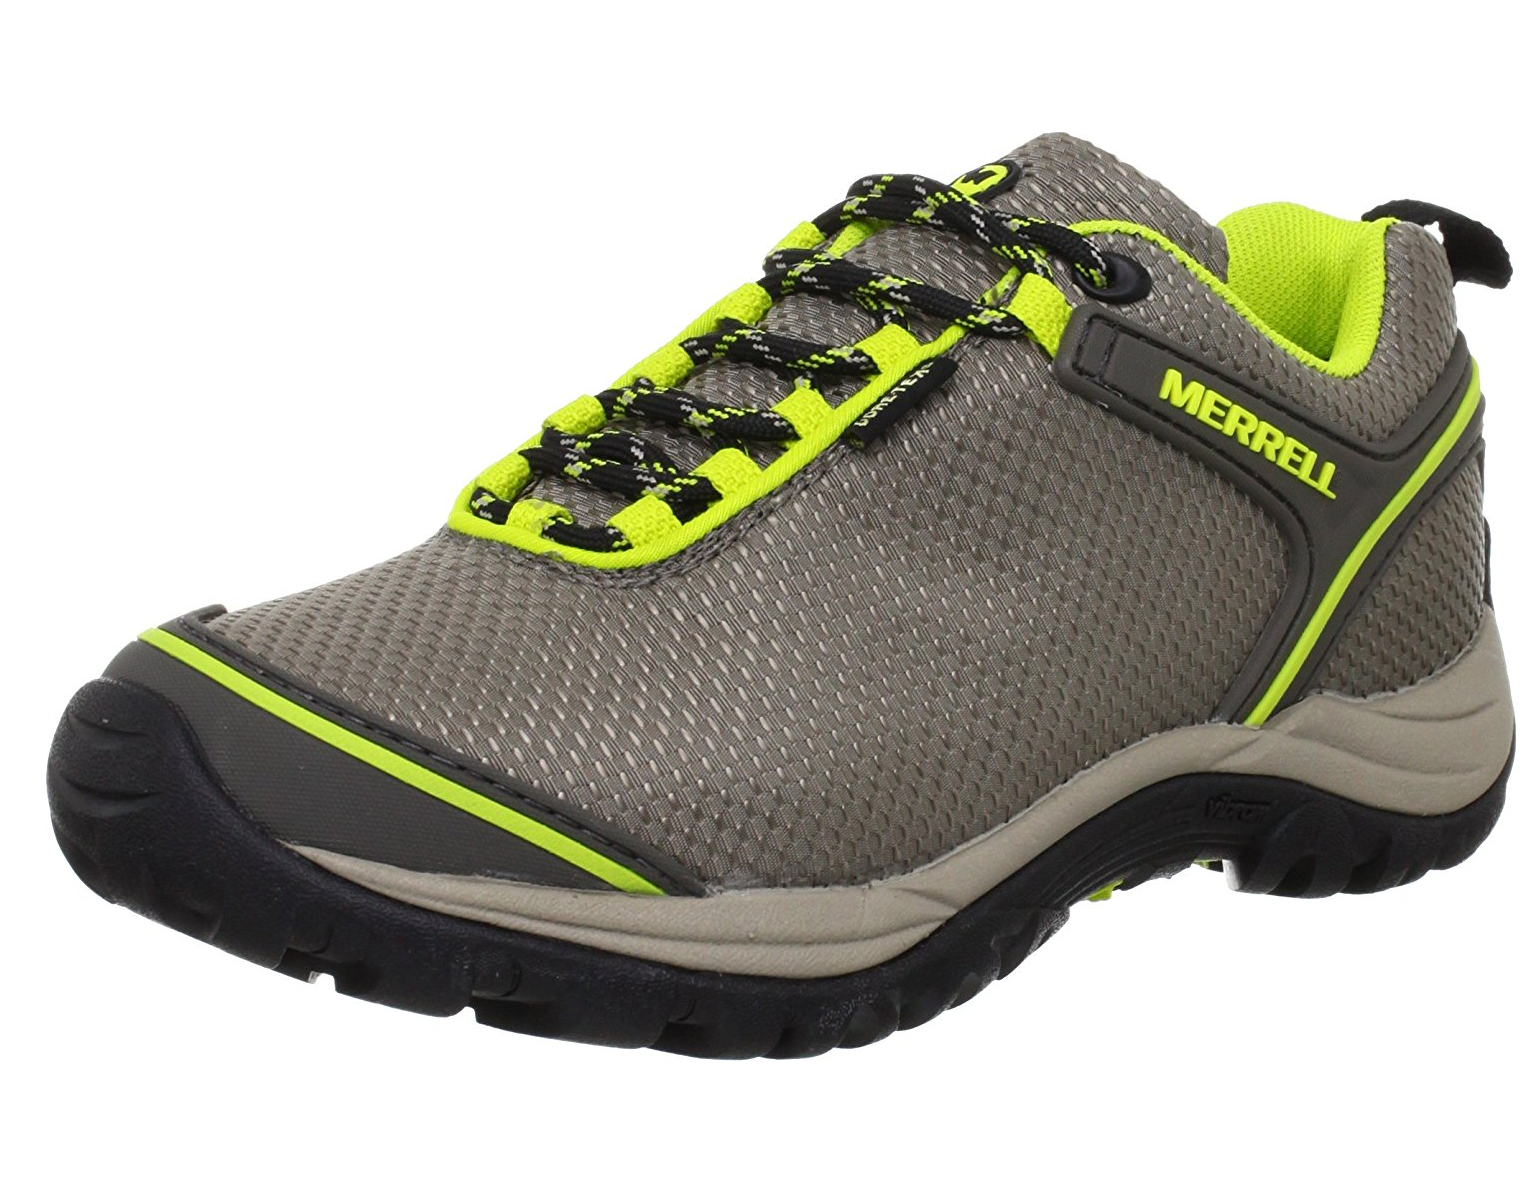 Merrell Femme Chameleon5 Storm Gore-Tex Outdoors Hiking Trail Chaussures